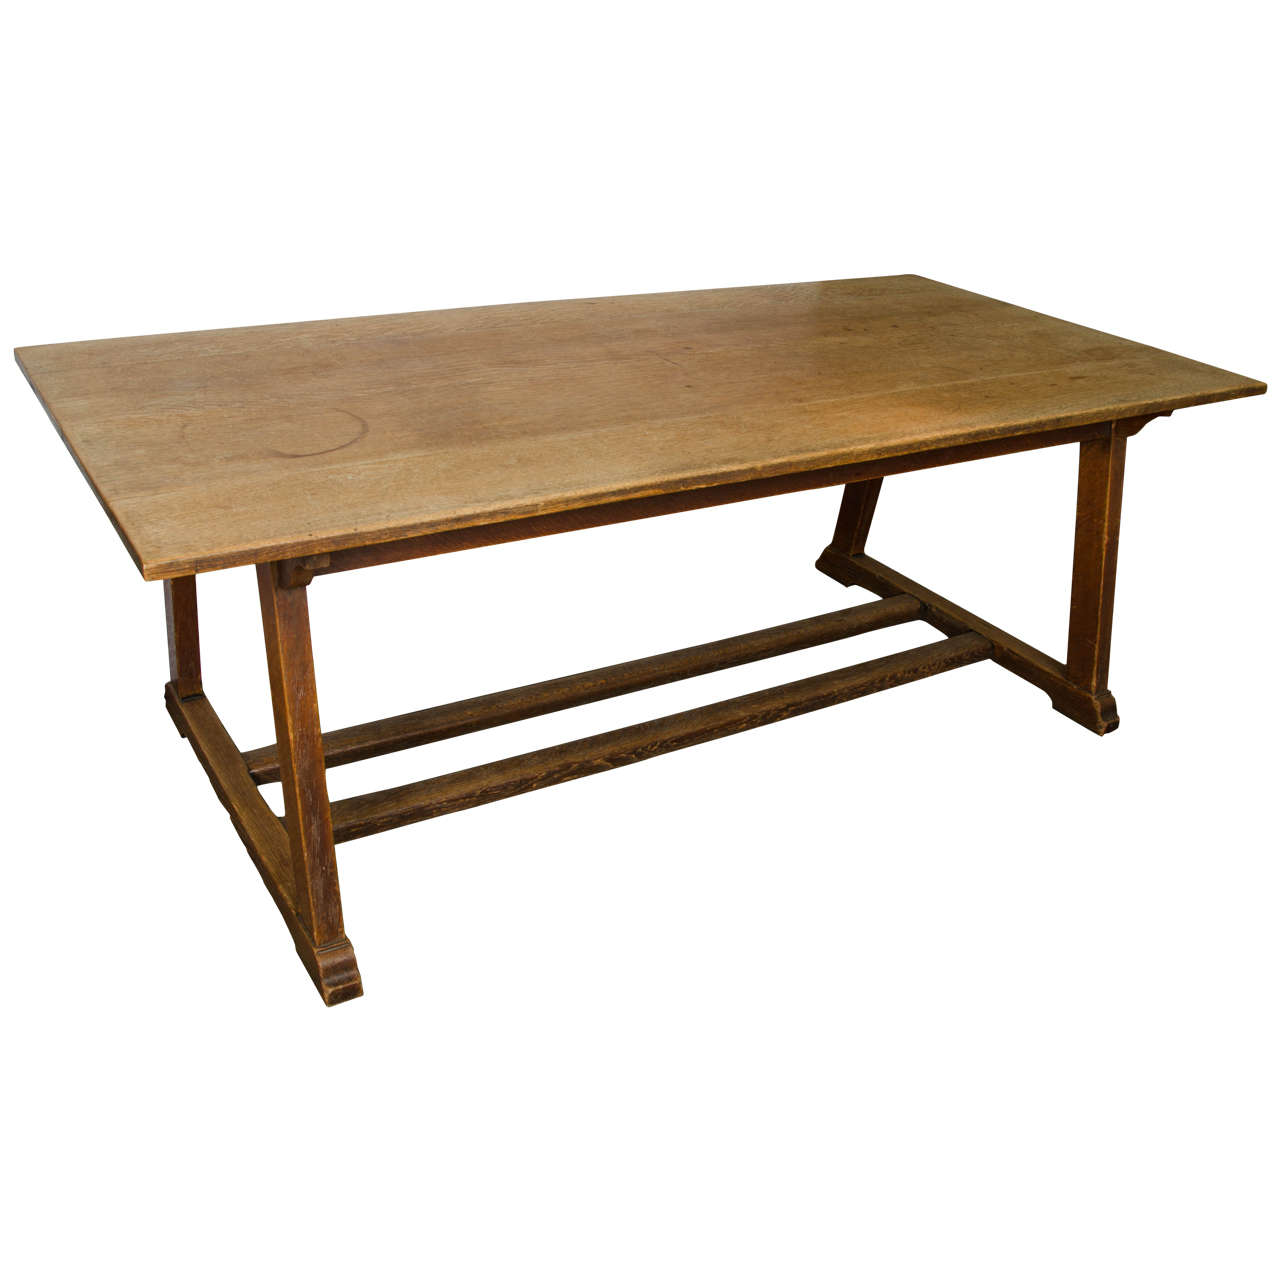 Oak arts and crafts rectangular dining table at 1stdibs for Oak dining room table